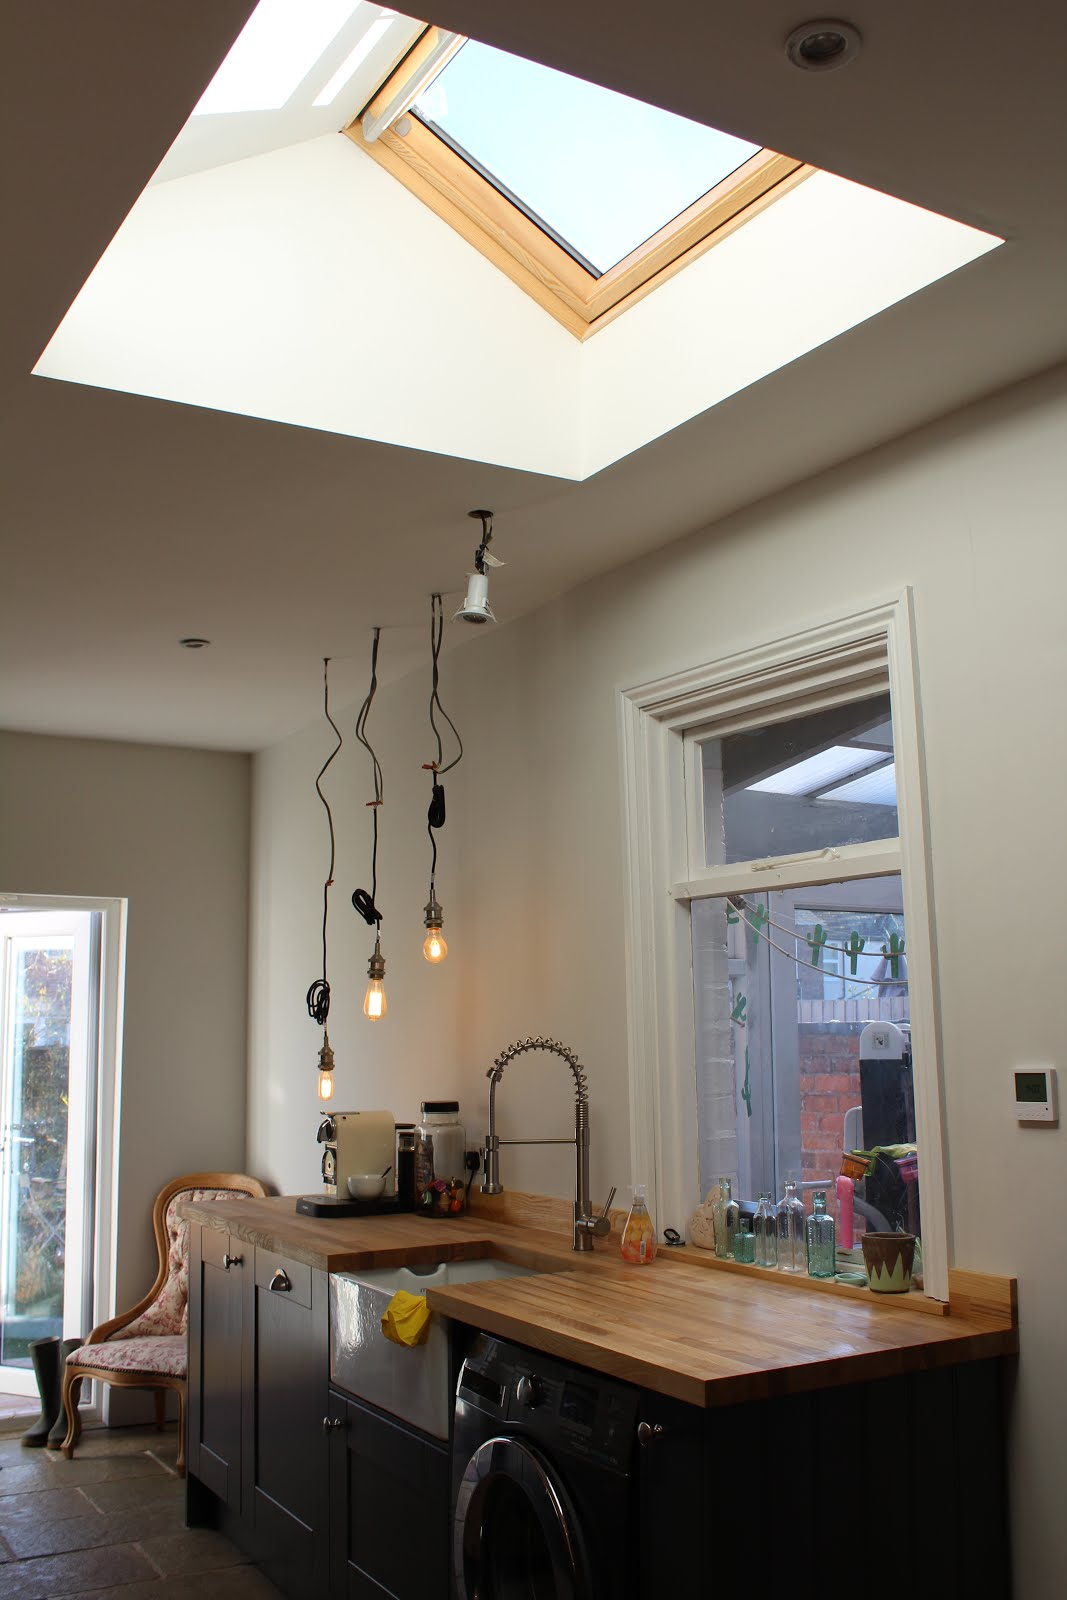 Roof Window in flat ceiling kitchen